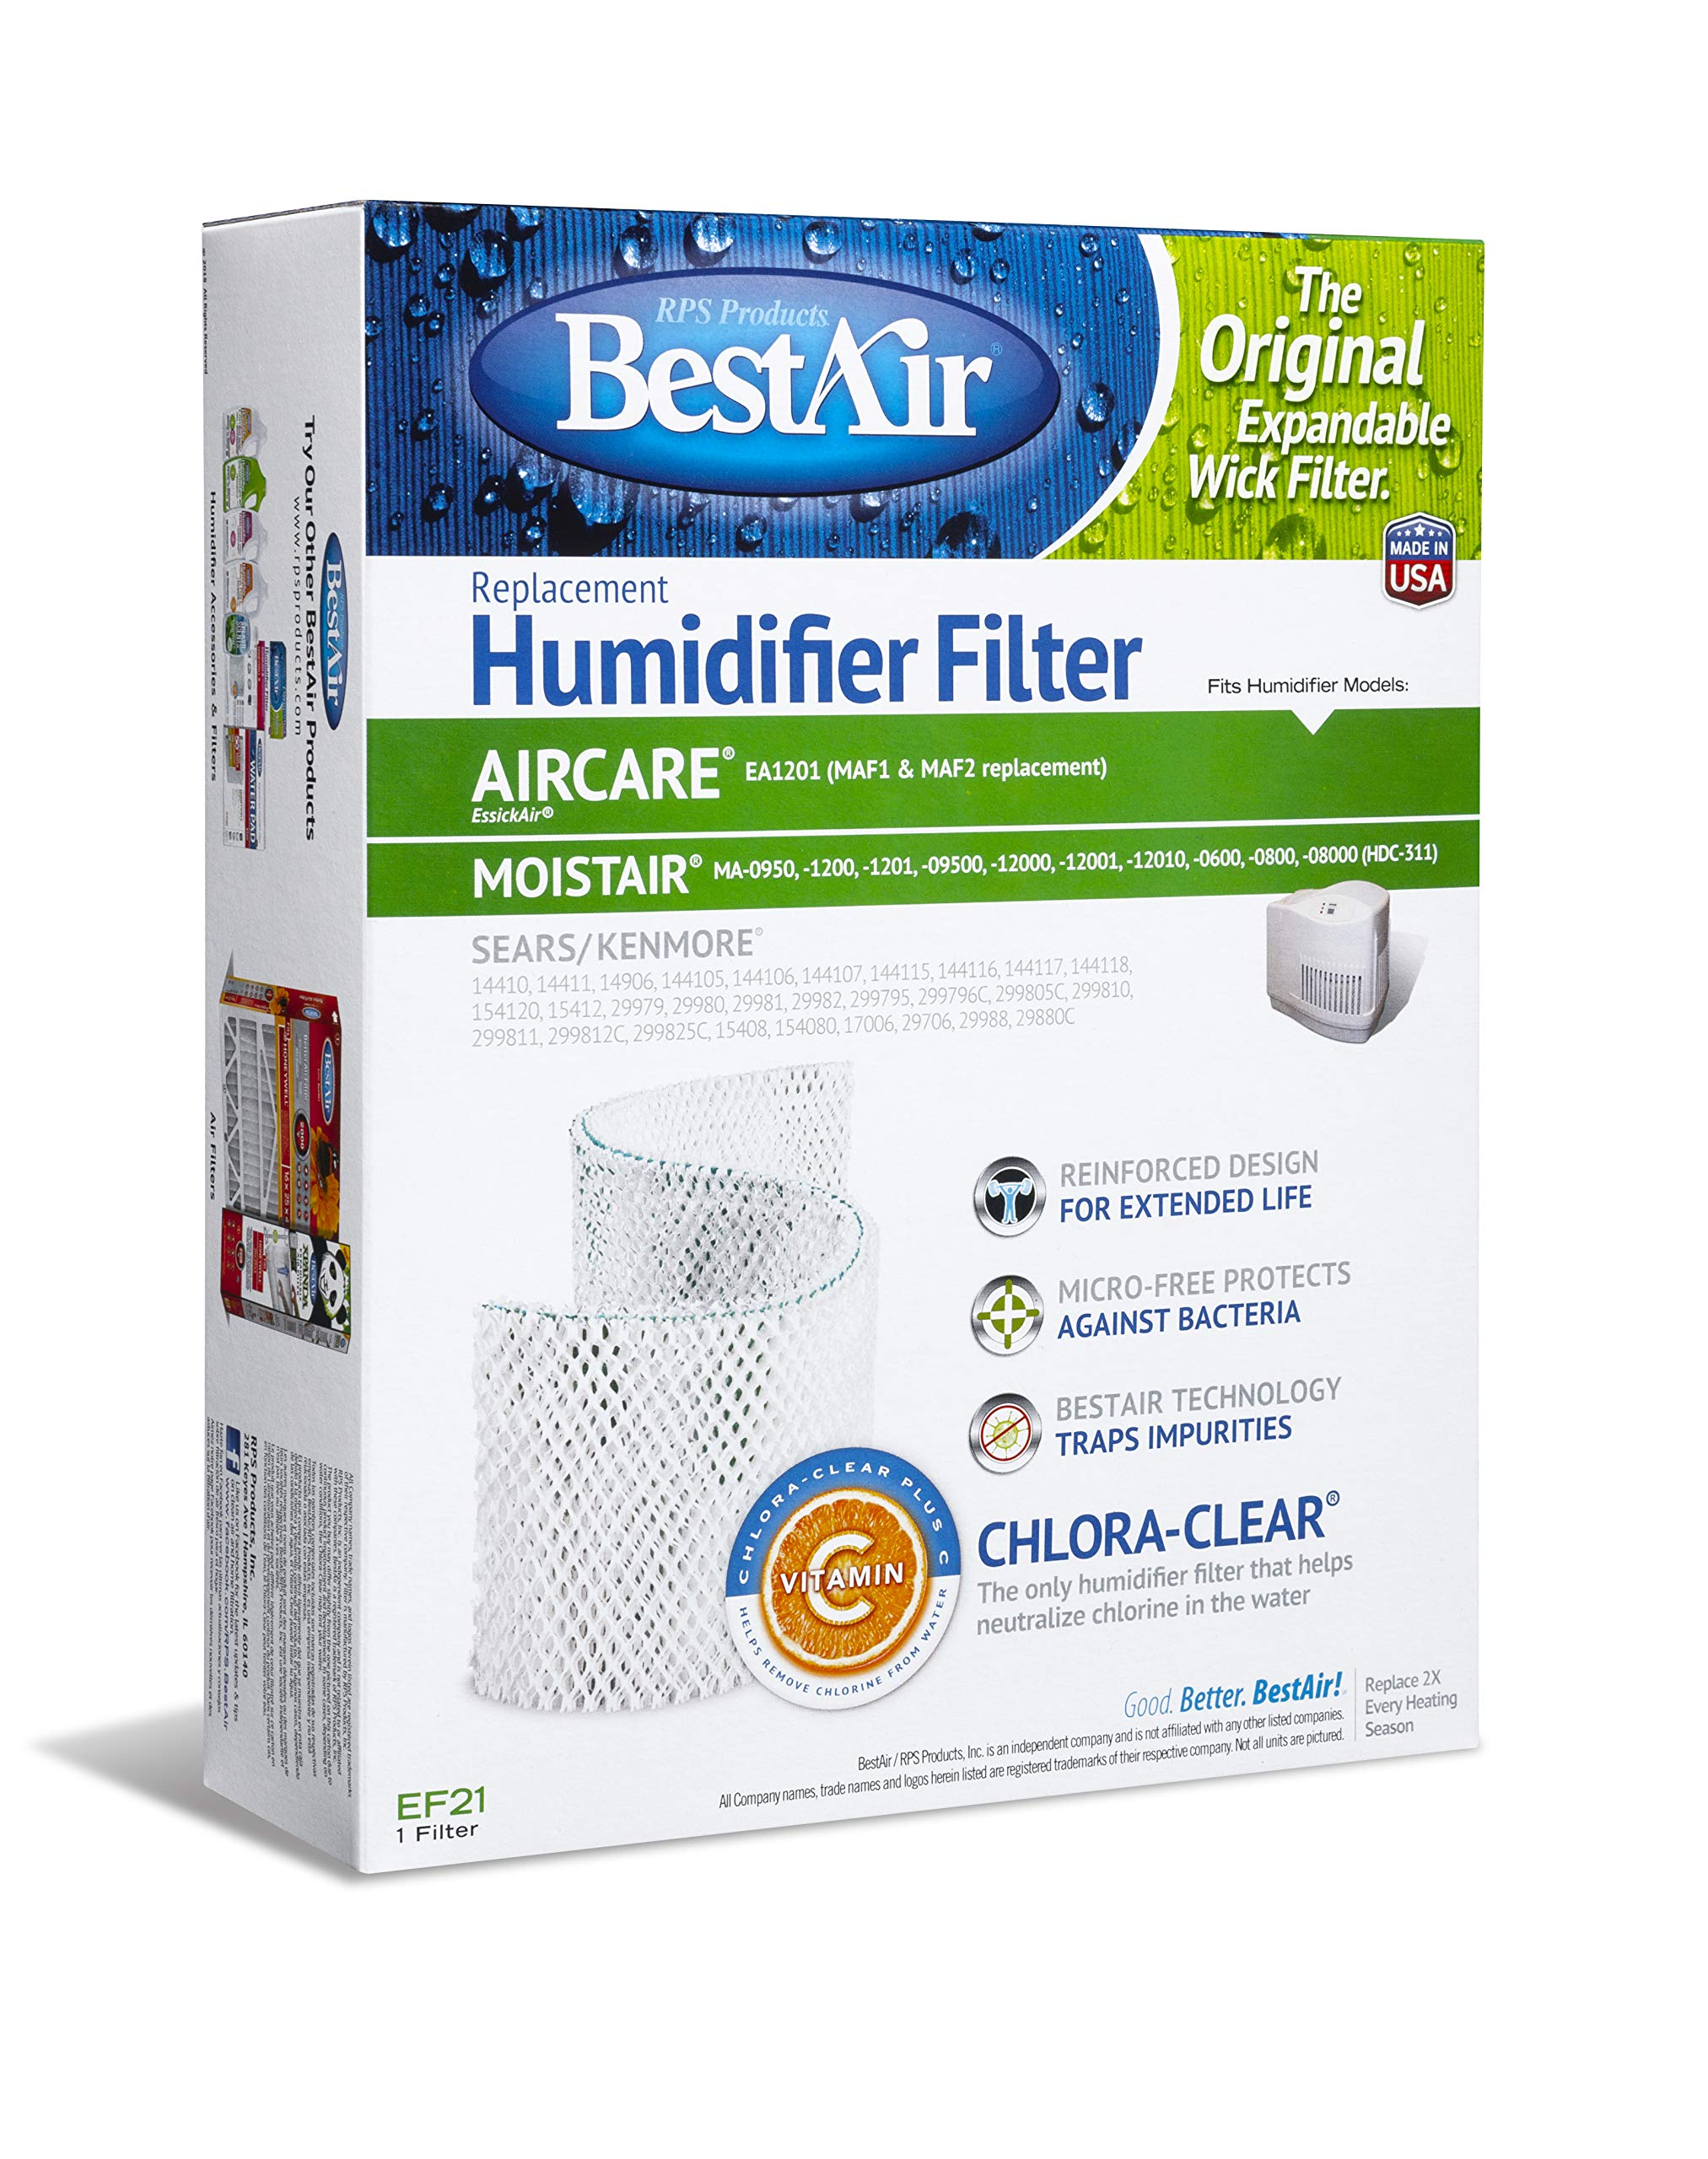 BestAir EF21-PDQ-3 Extended Life Humidifier Replacement Paper Wick Humidifier Filter, For Emerson, Sears & Kenmore Models, 10.7'' x 8.3'' x 3.2'', 3 Pack by BestAir